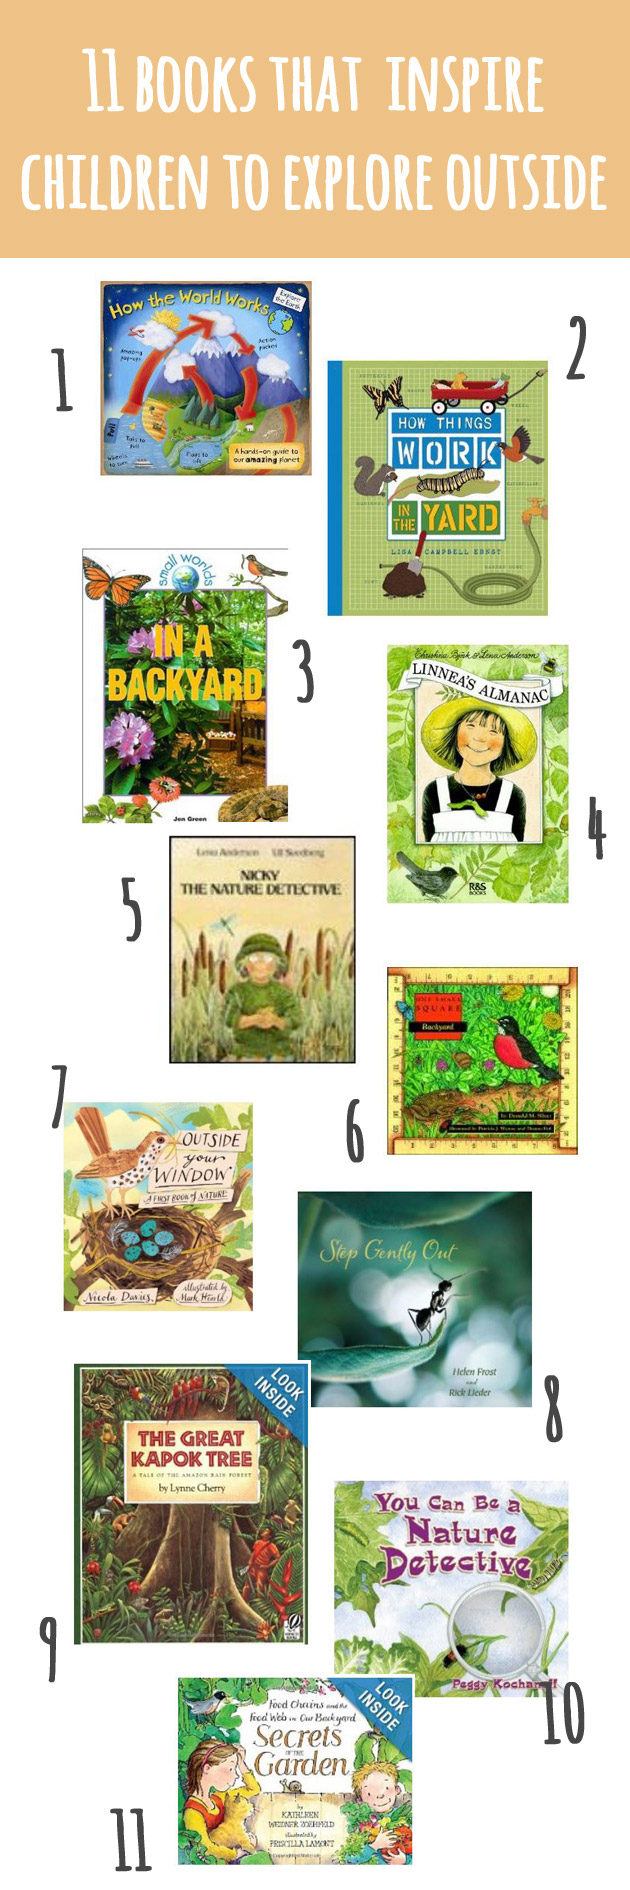 11 Books That Inspire Children to Explore Outside